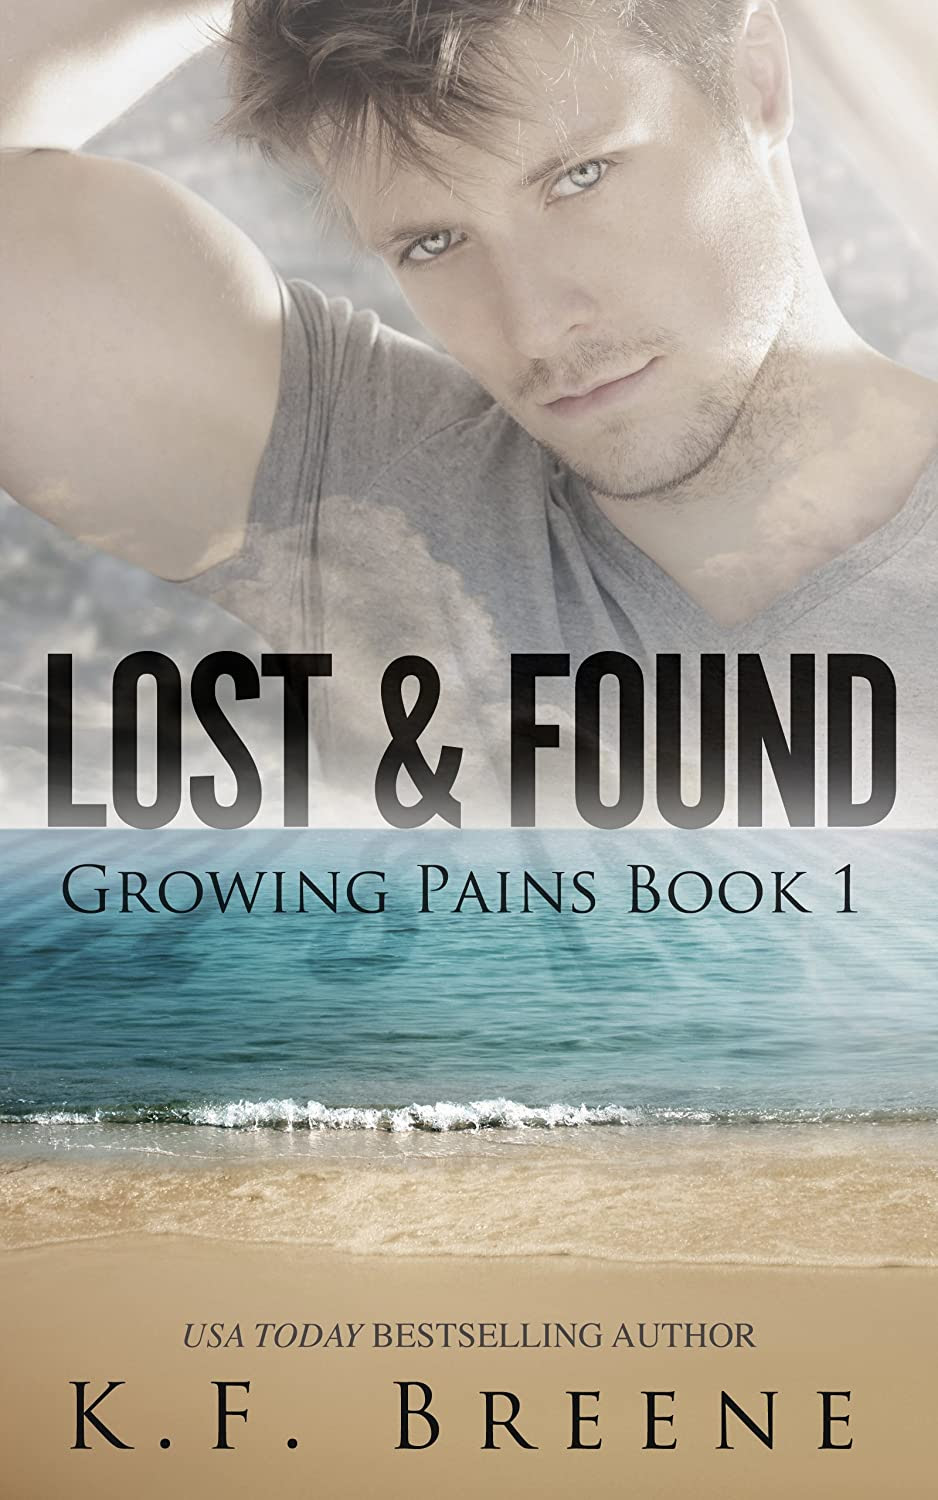 http://www.amazon.com/Lost-Found-Growing-Pains-1-ebook/dp/B00FD7Z51O/